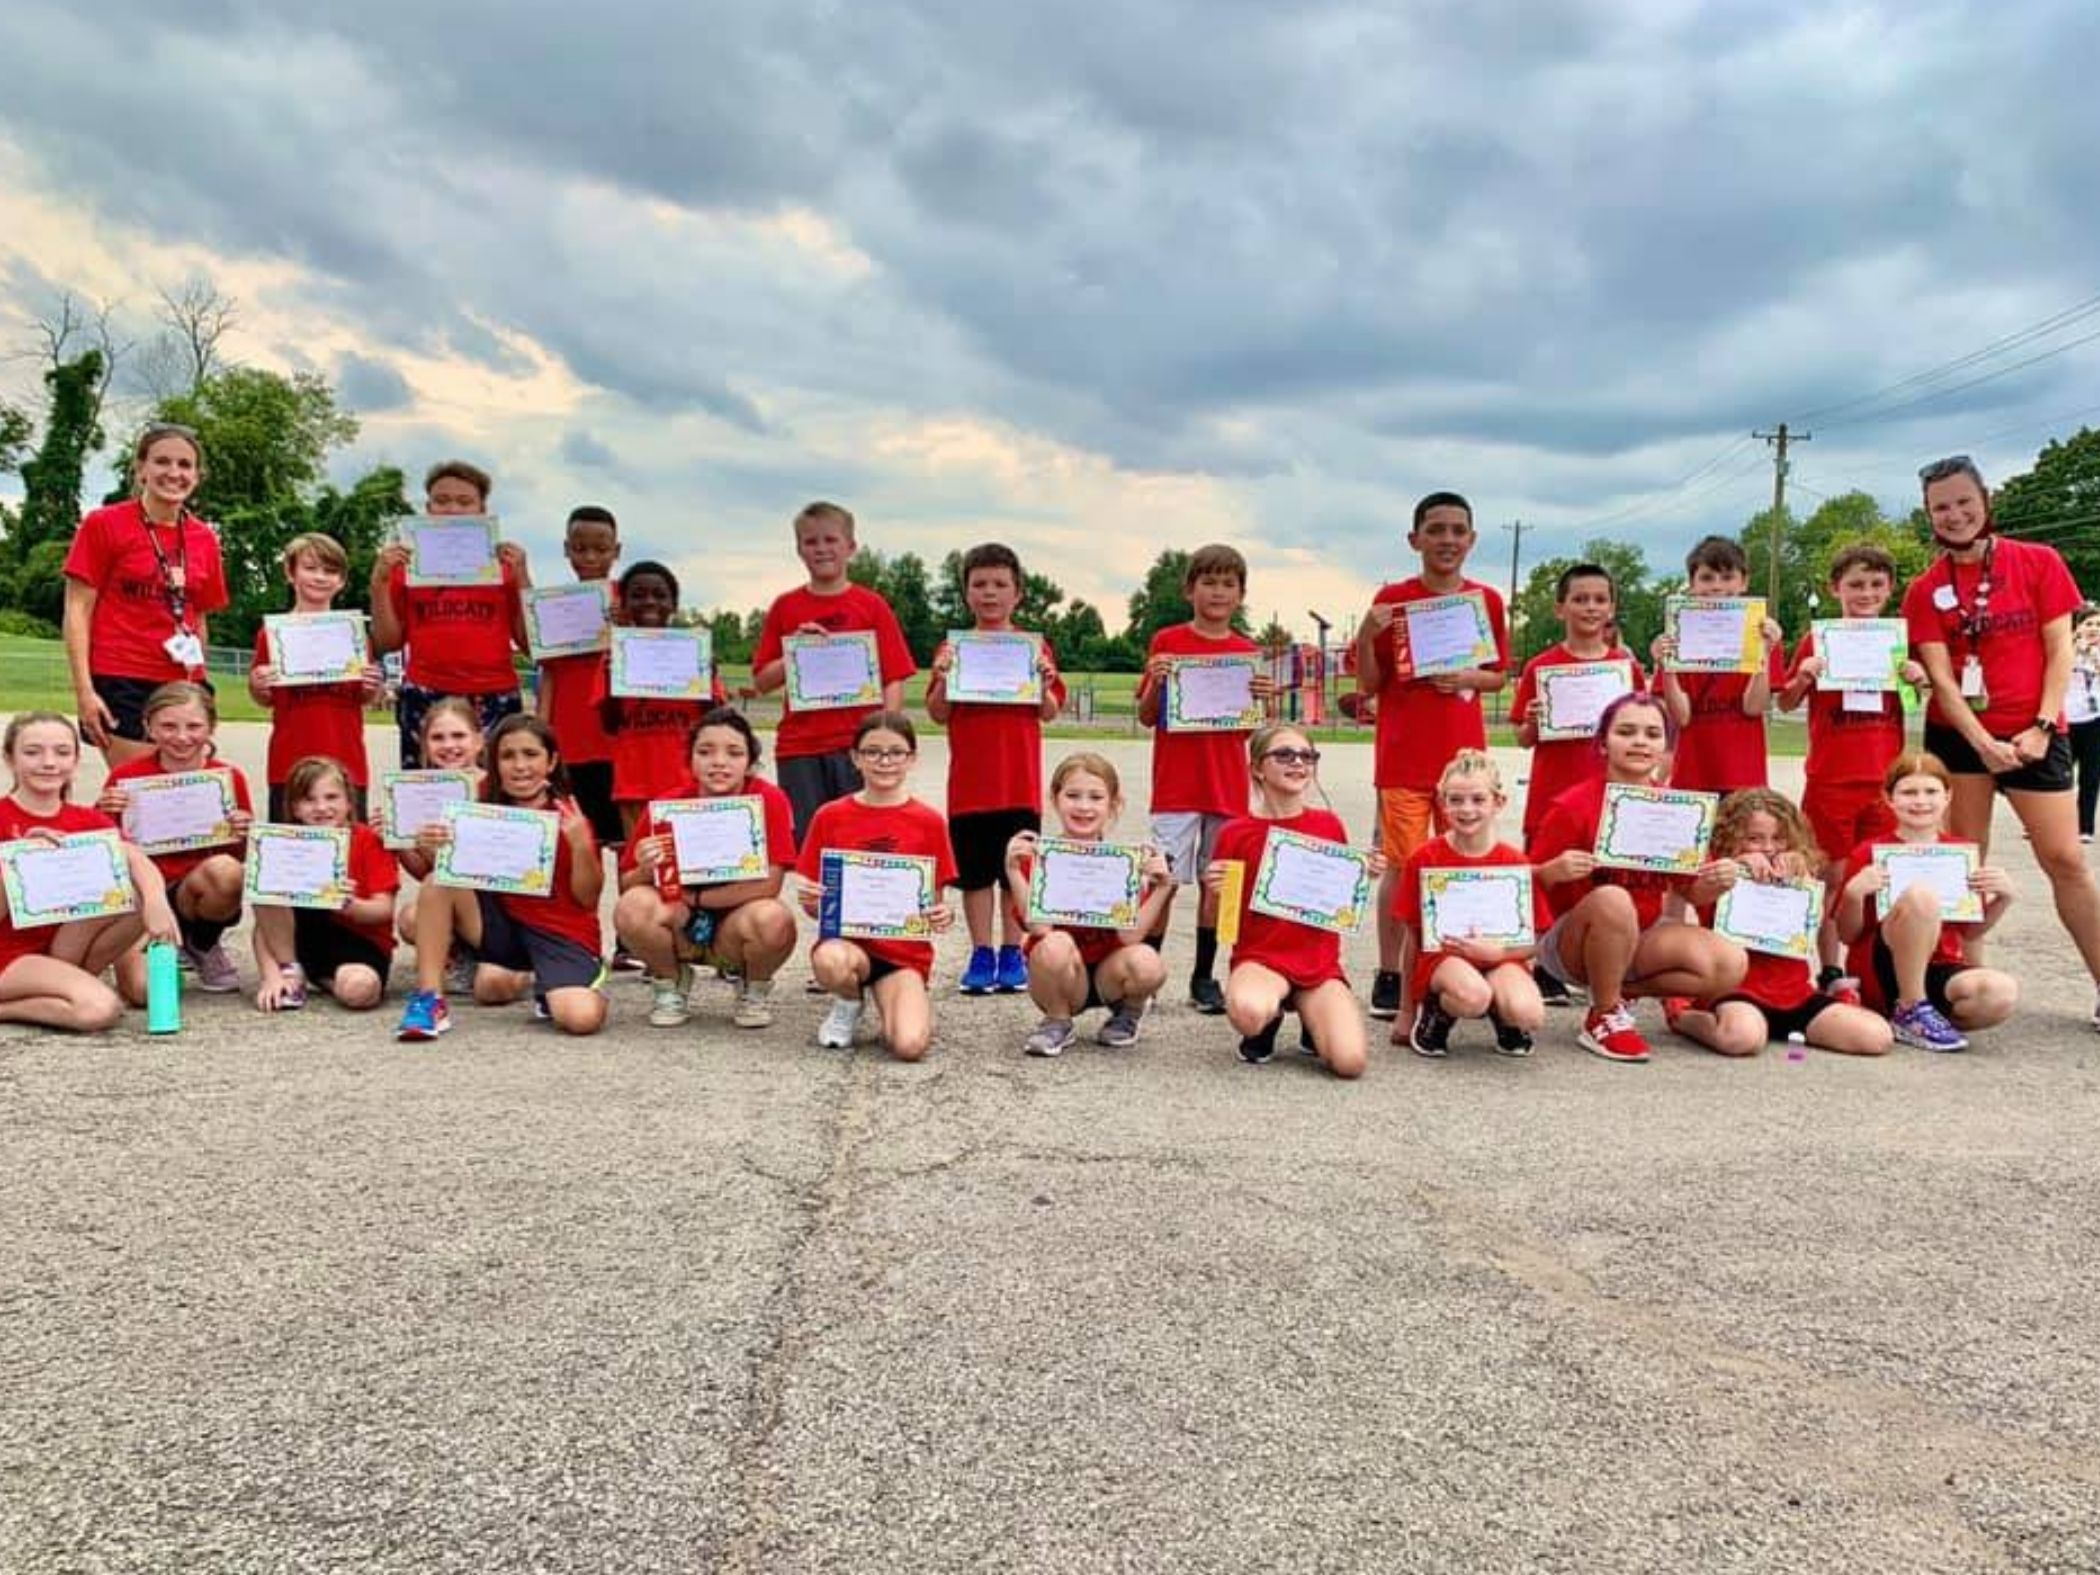 Students pose with certificates following cross country meet